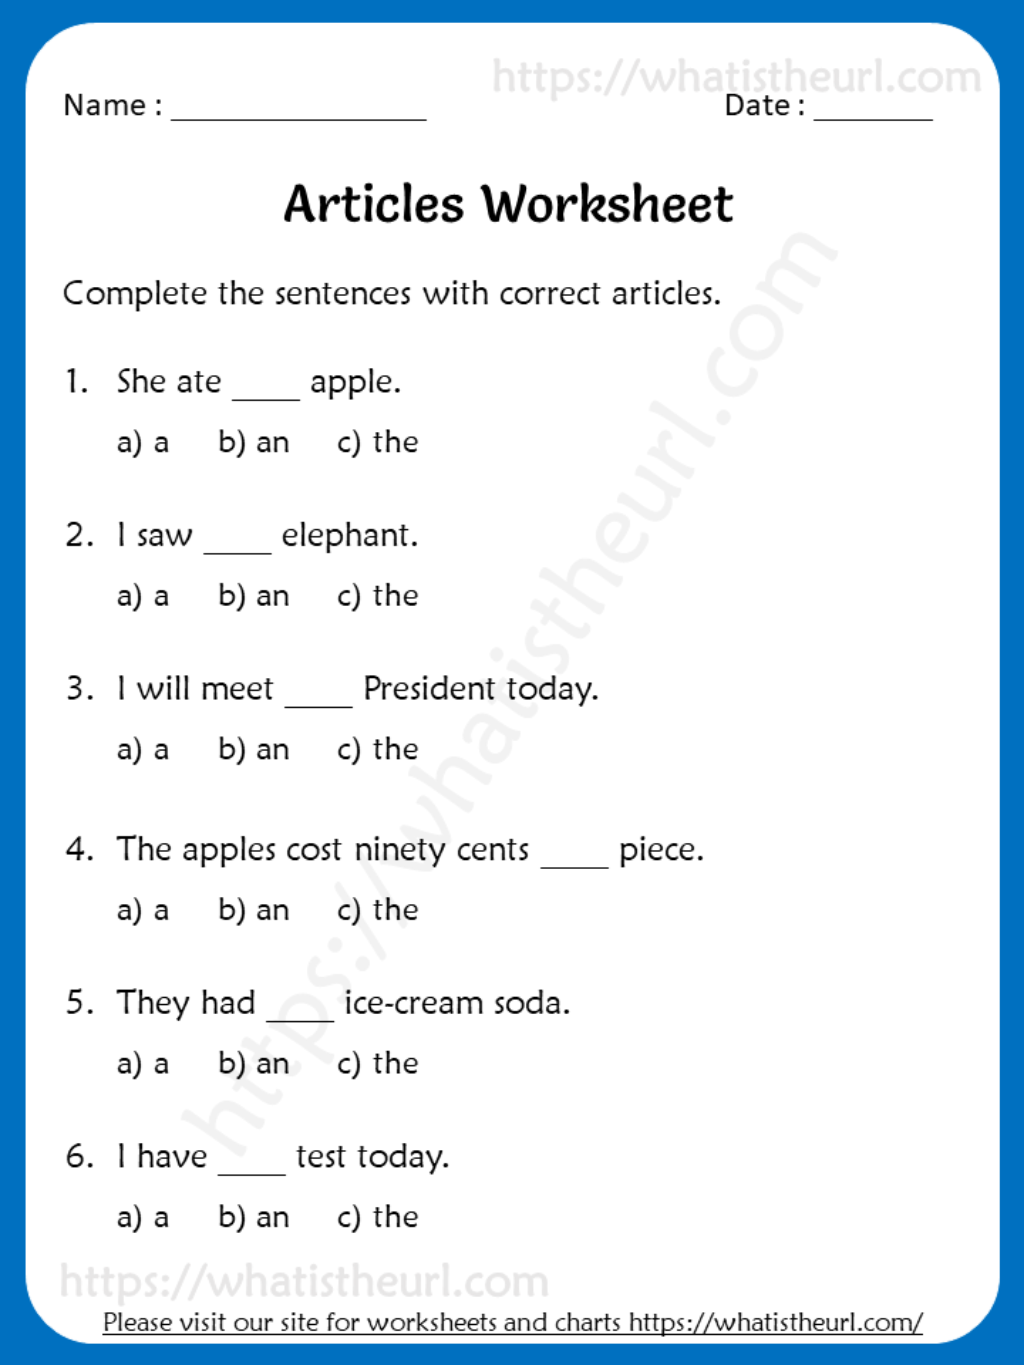 Articles Worksheets For 3rd Grade A An The